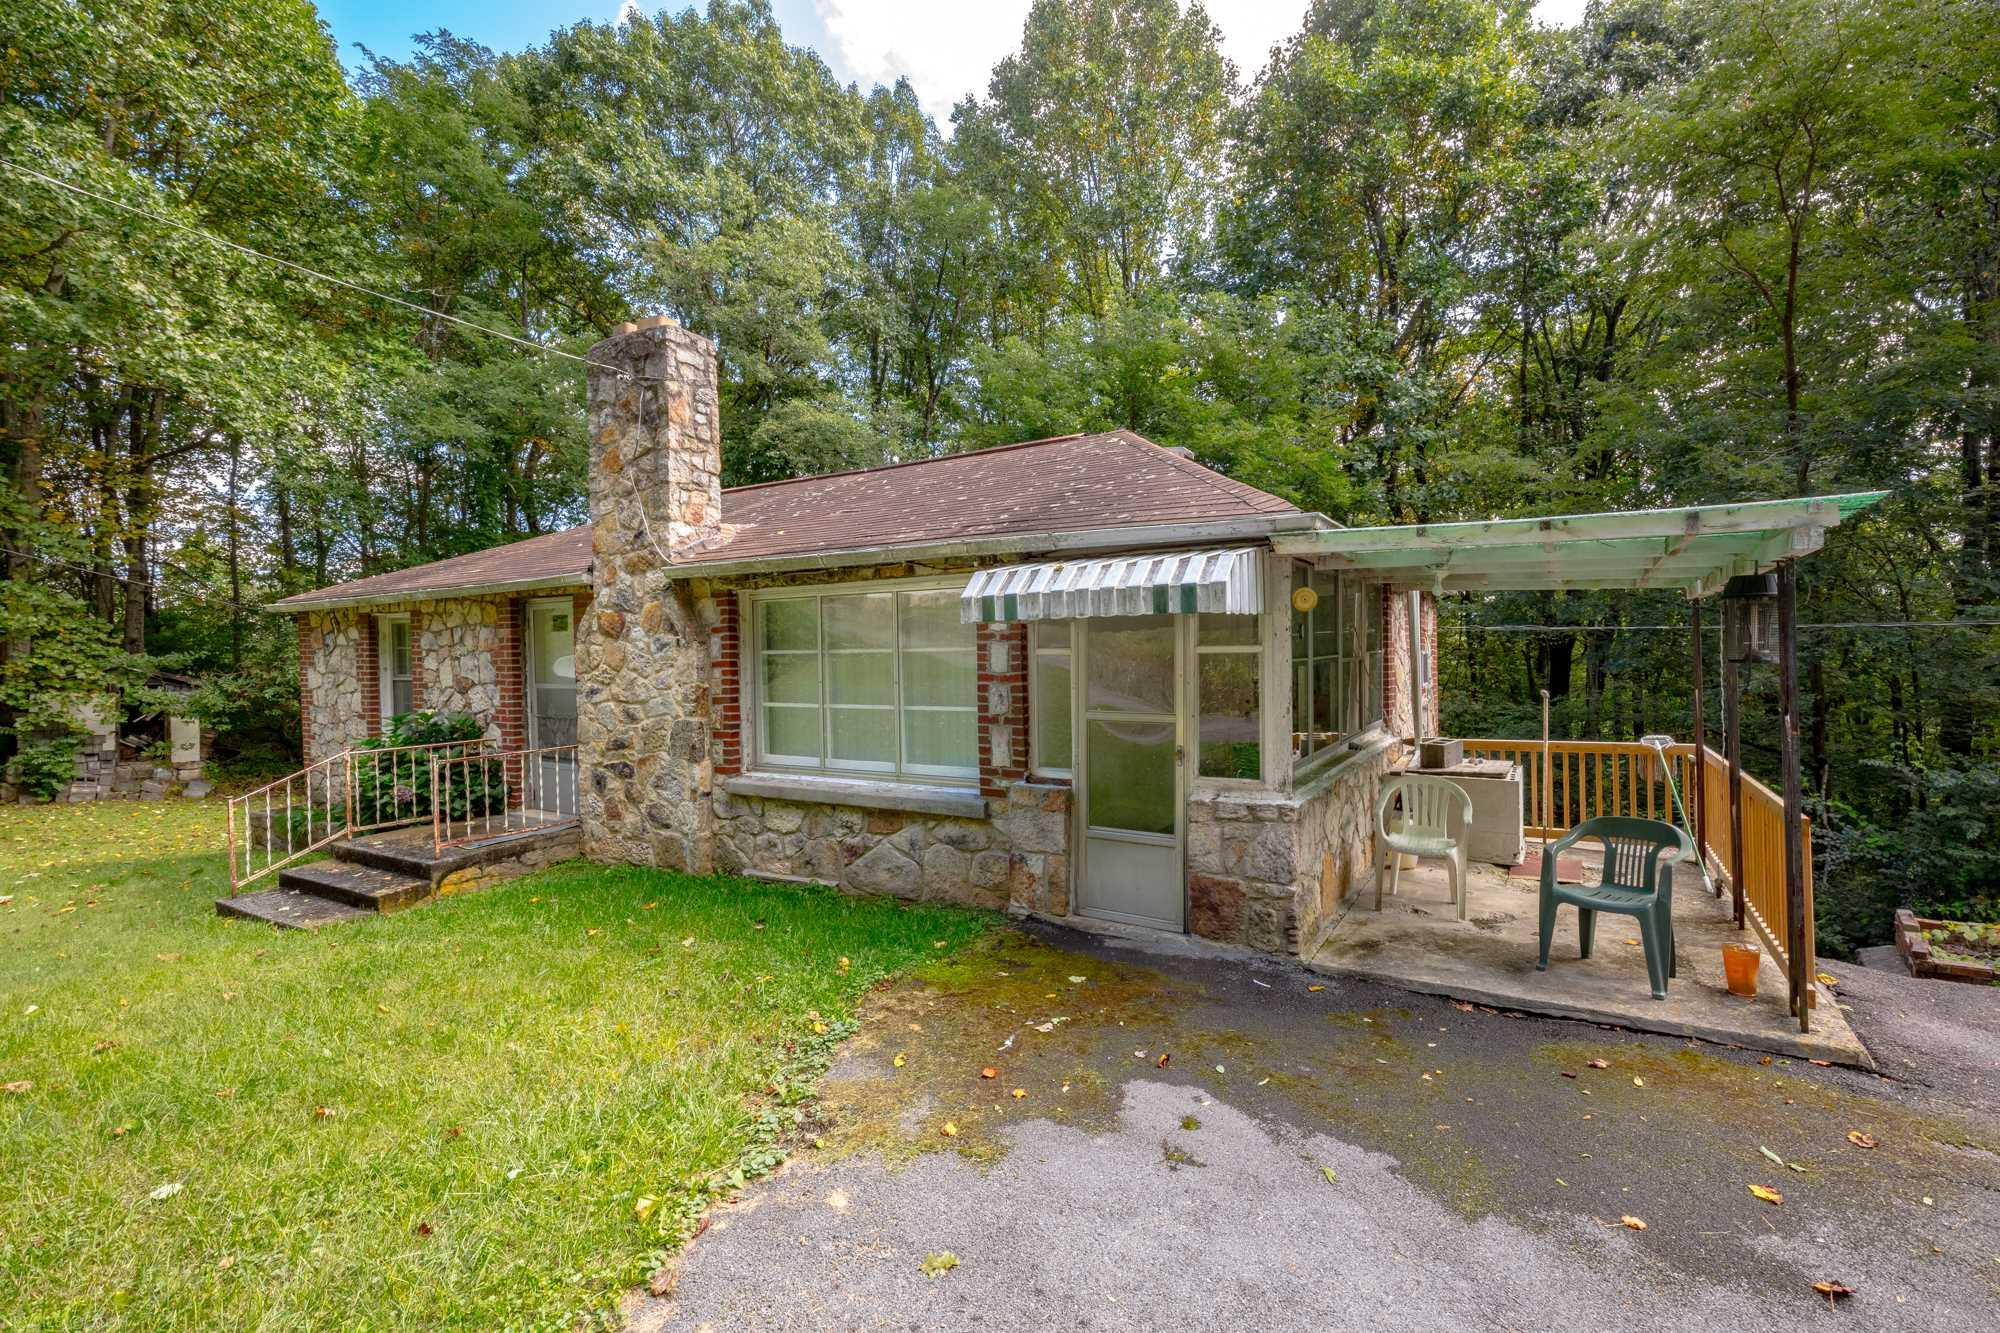 2 BR 2 BA home on +/-2.6 acres in the mountains of Southwest VA. This home has the mountain cabin retreat feel and provides a view in the fall and winter from E. River Mtn. Recent survey on file. Also includes an approx. 20x20 cinderblock garage ideal for yard equipment, etc. and a large frame garage big enough to most likely handle two vehicles, or simply use it as storage. Other features include a paved driveway, wood stove, wood burning fireplace, large living area, oil furnace heat, window unit for cooling, and more.